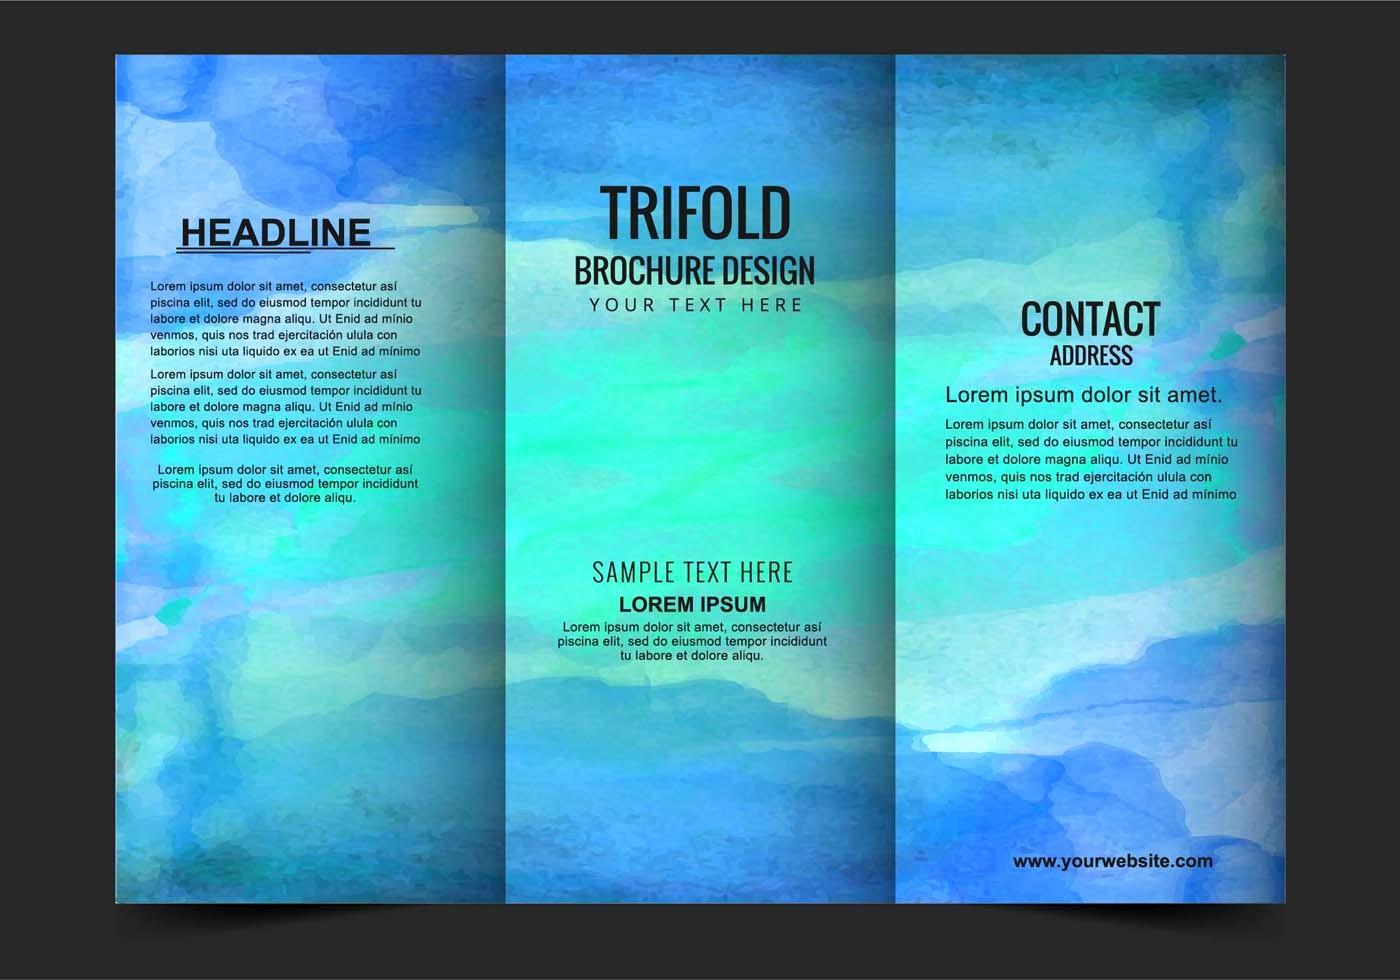 Tri-fold Brochure Examples Awesome Vector Modern Trifold Brochure Template Download Free